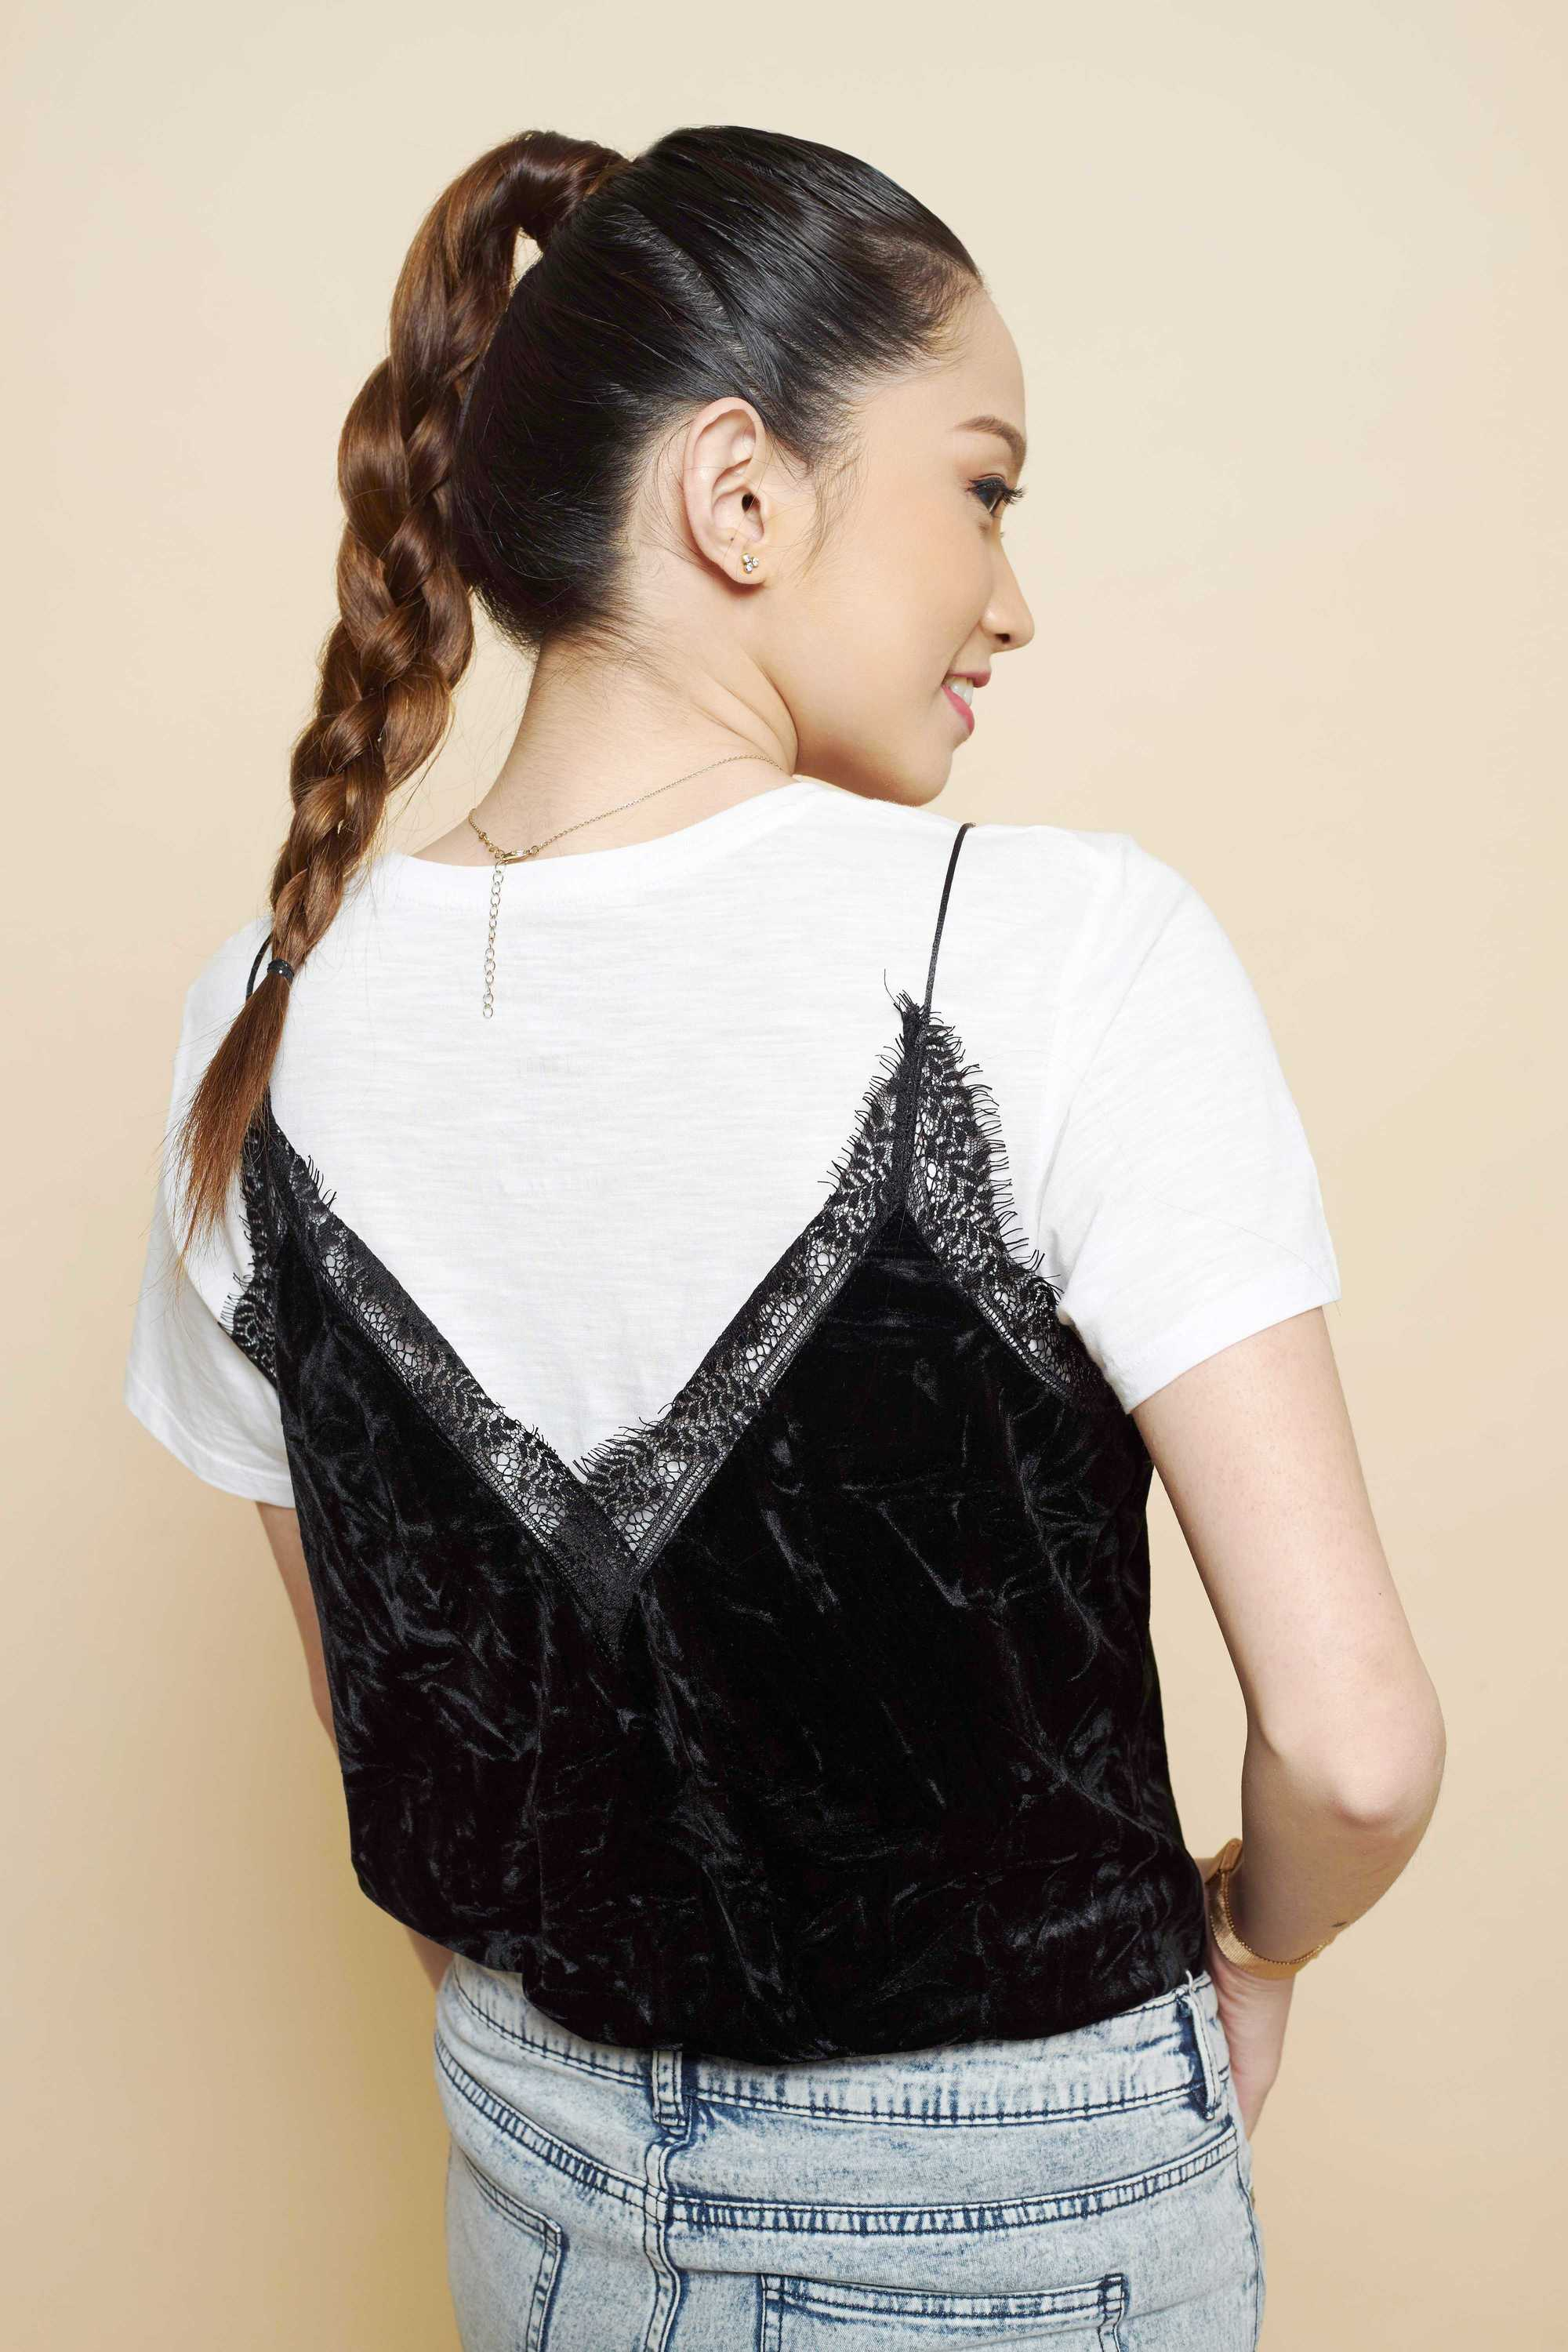 Updos with braids: Side shot of a woman with dark brown ombre hair styled into a four strand braided ponytail.